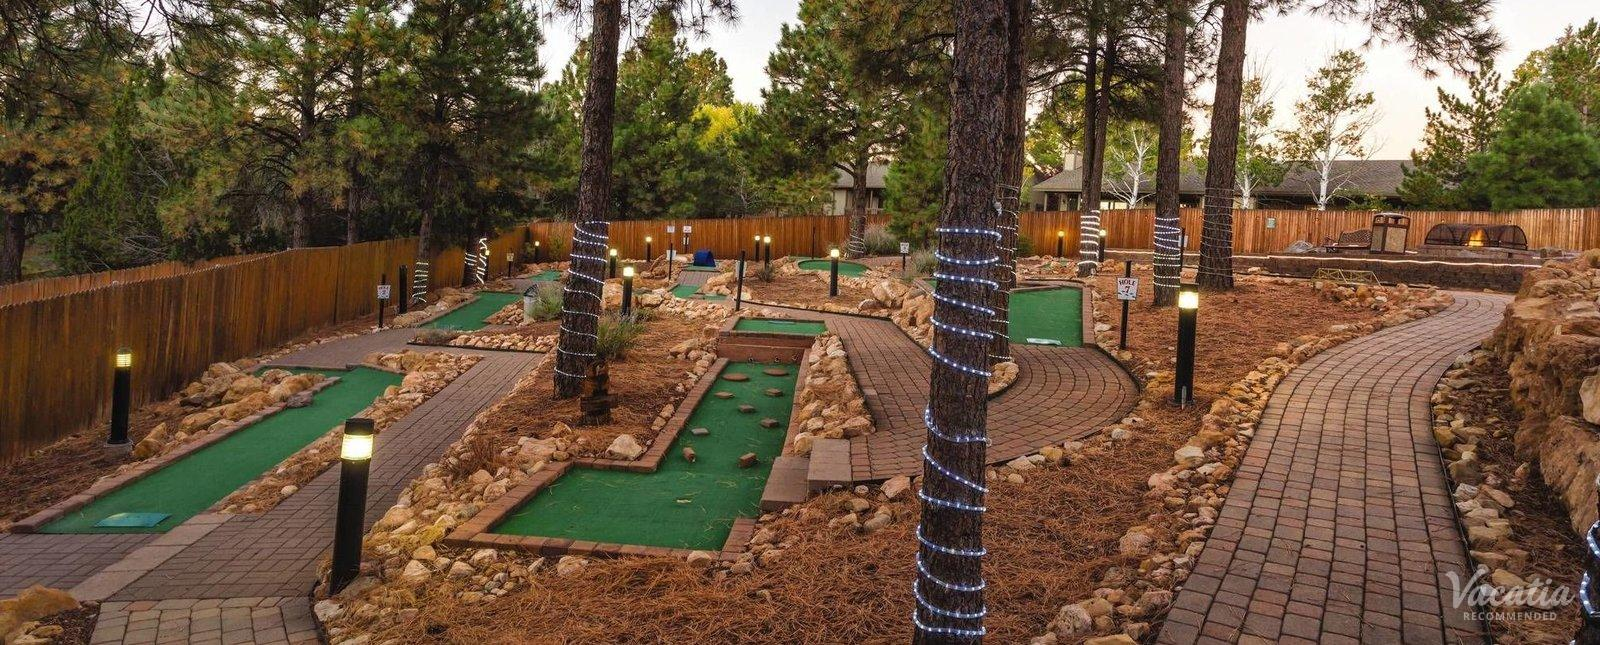 Wyndham Flagstaff Mini Golf